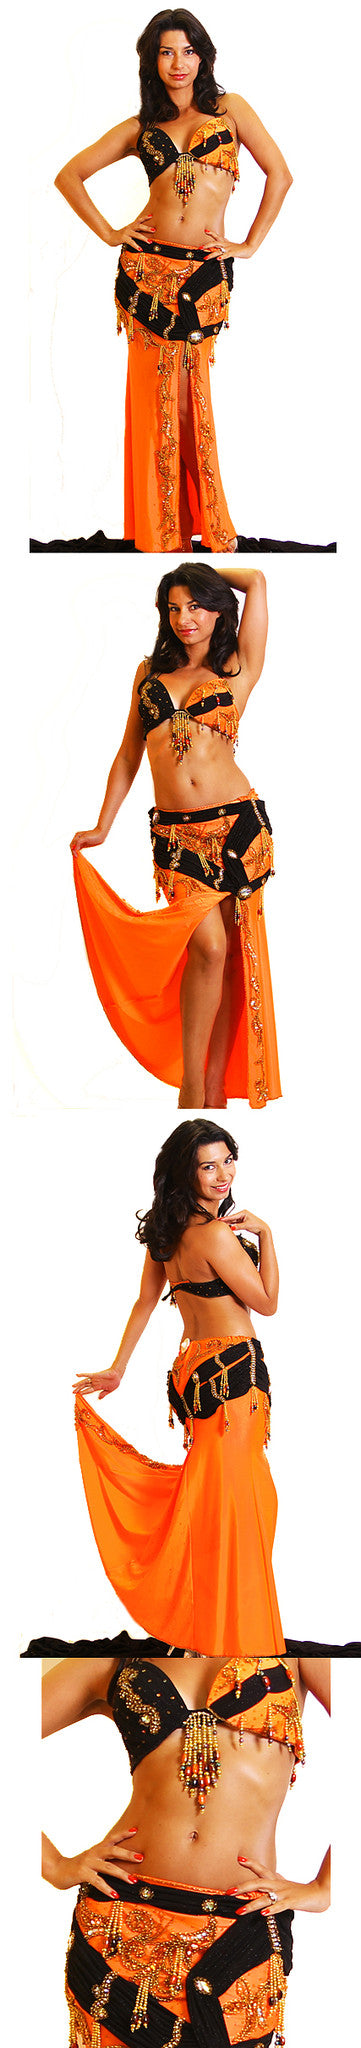 Mumtaz Two-Piece Costume Costume Sale